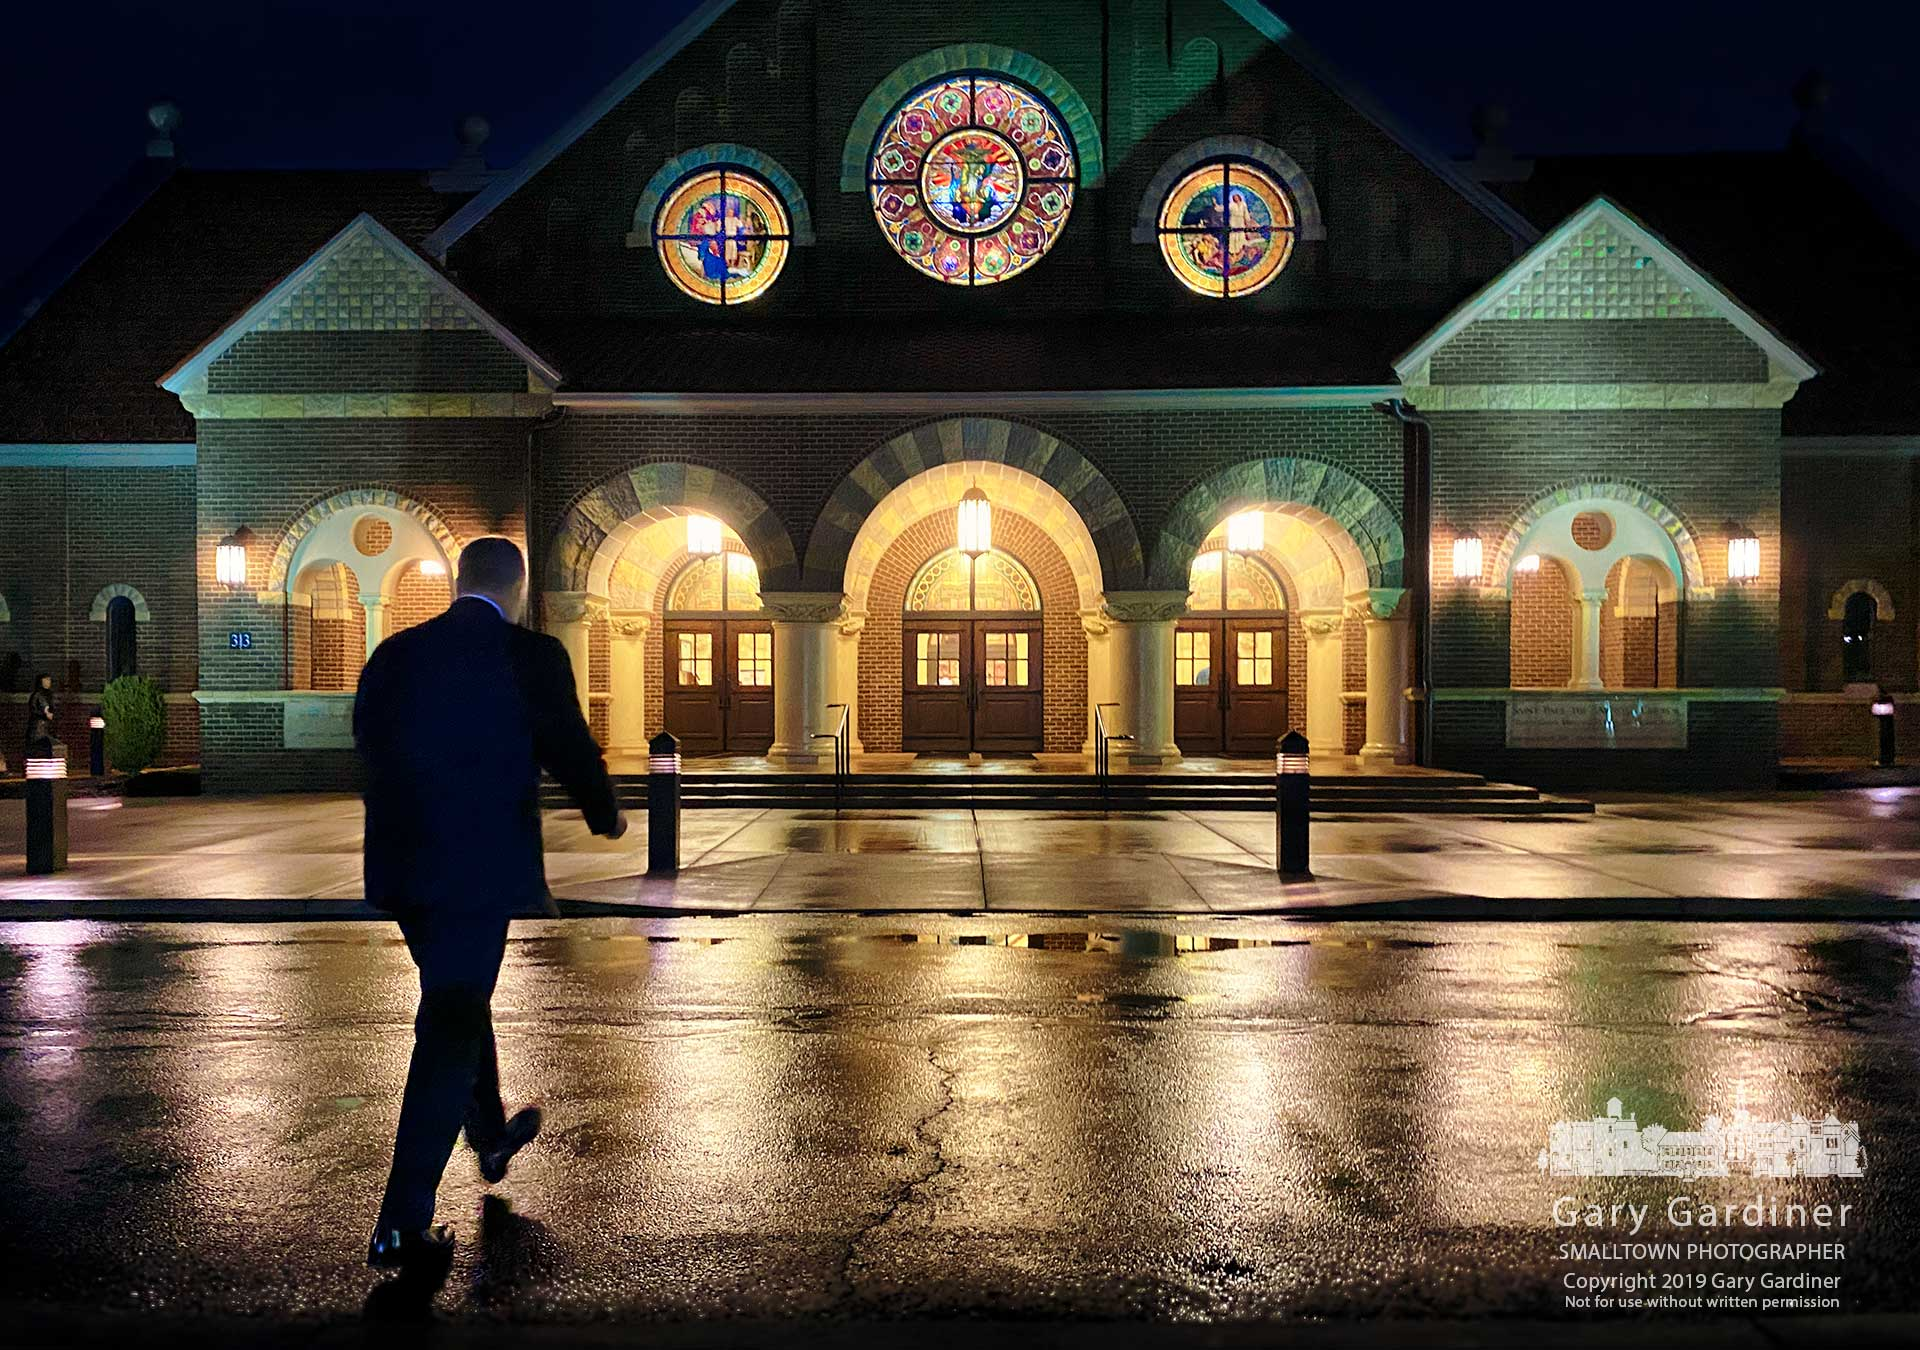 Parishioners arrive before sunrise during an early morning rain for the first Mass at St. Paul the Apostle Church Sunday. My Final Photo for Dec. 29, 2019.